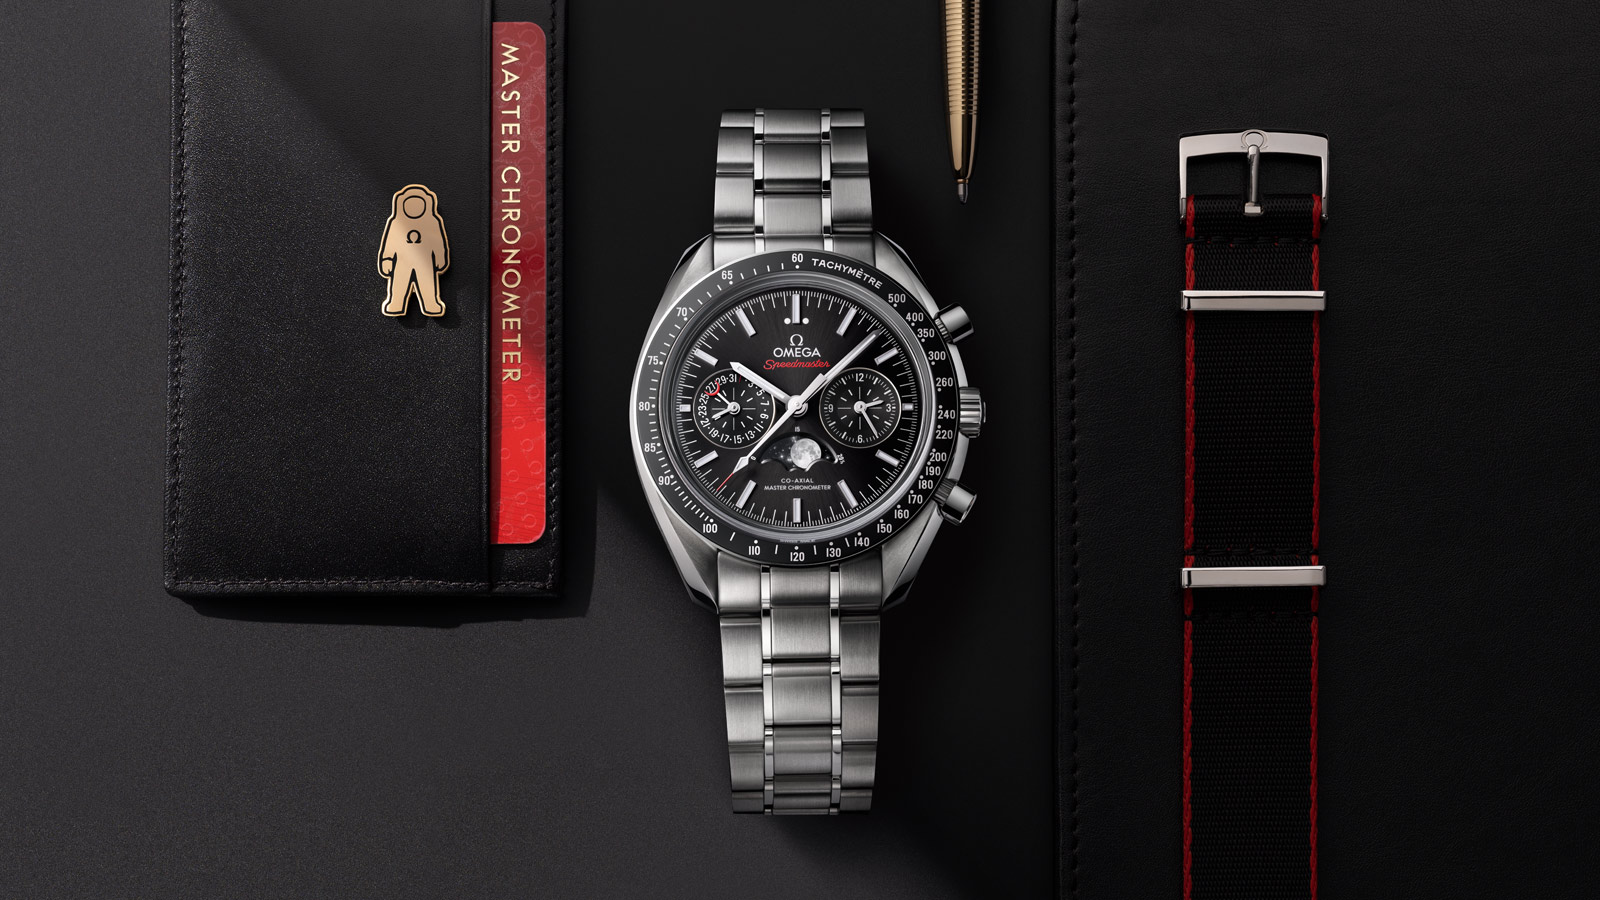 Speedmaster Moonwatch Moonwatch Omega Co‑Axial Master Chronometer Moonphase Chronograph 44,25 mm Orologio - 304.30.44.52.01.001